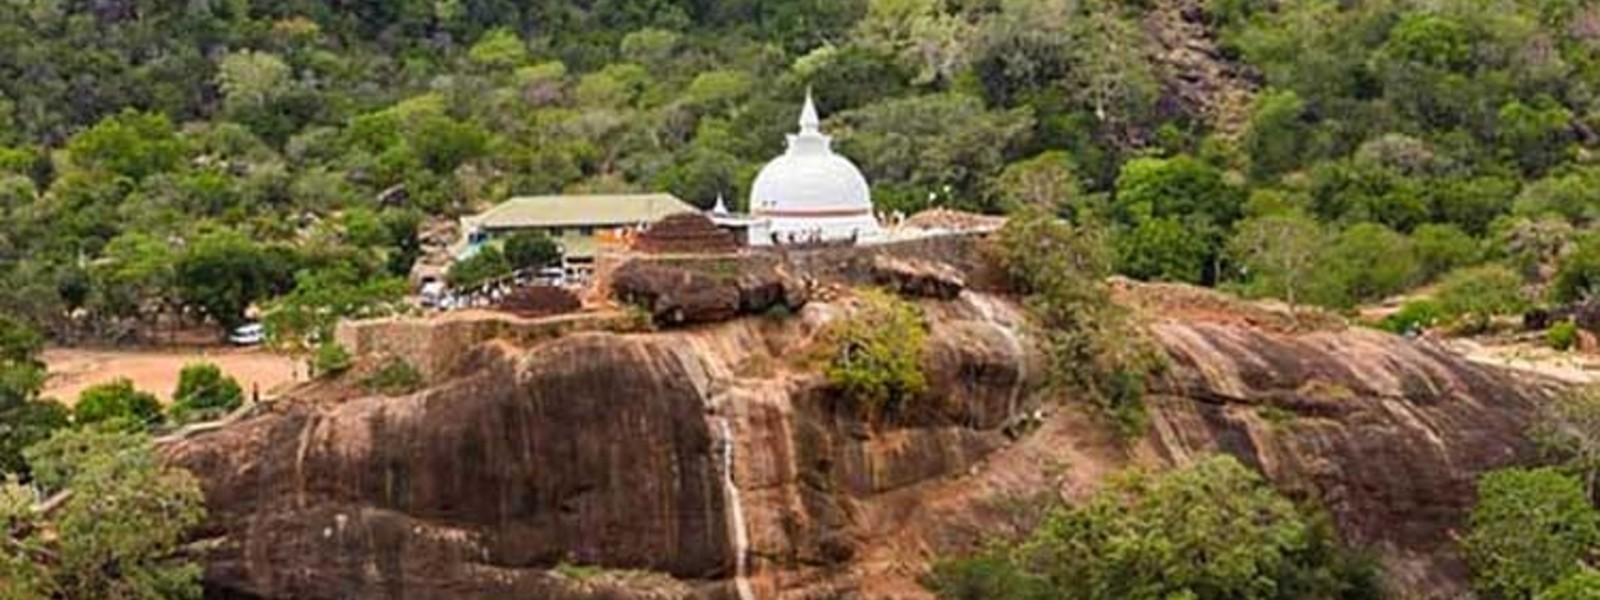 07 suspects arrested for defacing ancient structure at Sithulpawwa Sacred Grounds